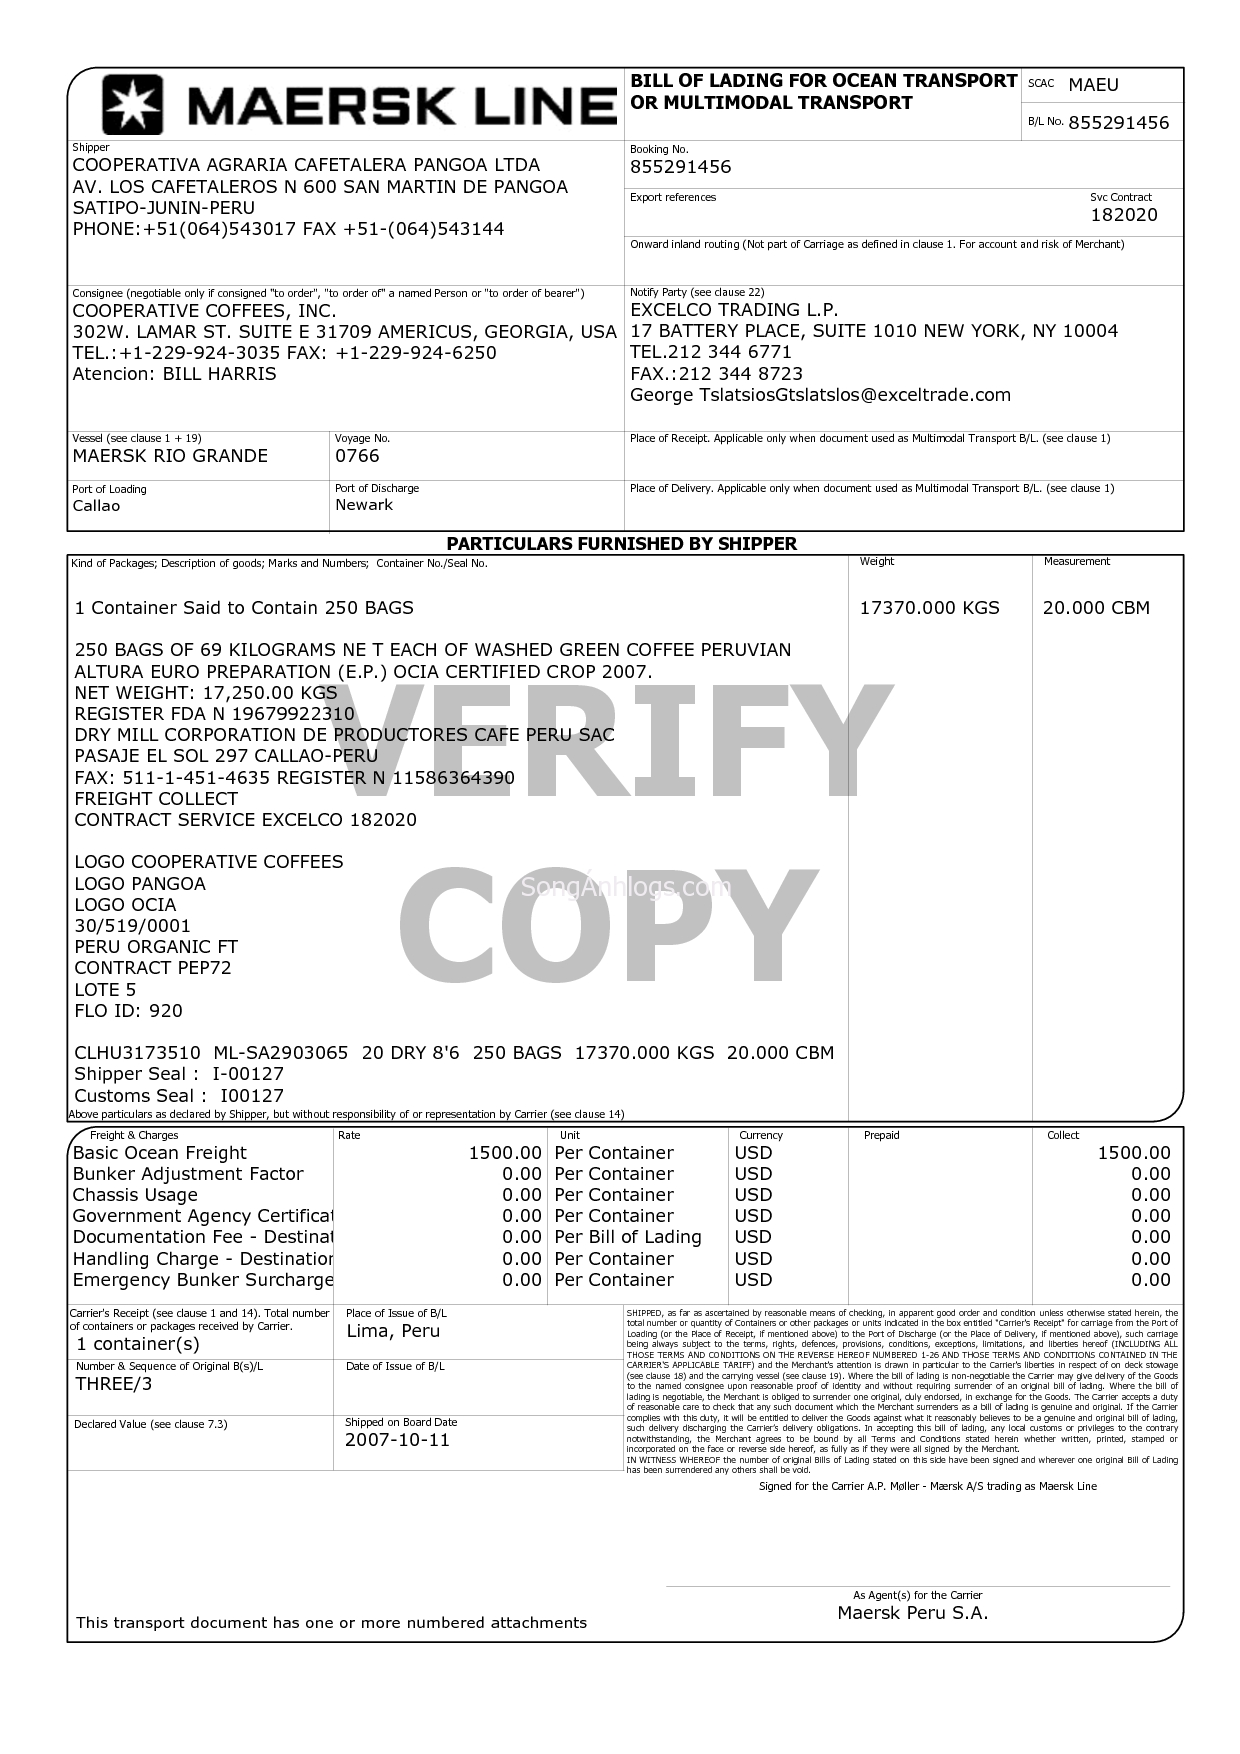 mu chi tit vn n bill of lading bill of lading commercial invoice of maersk